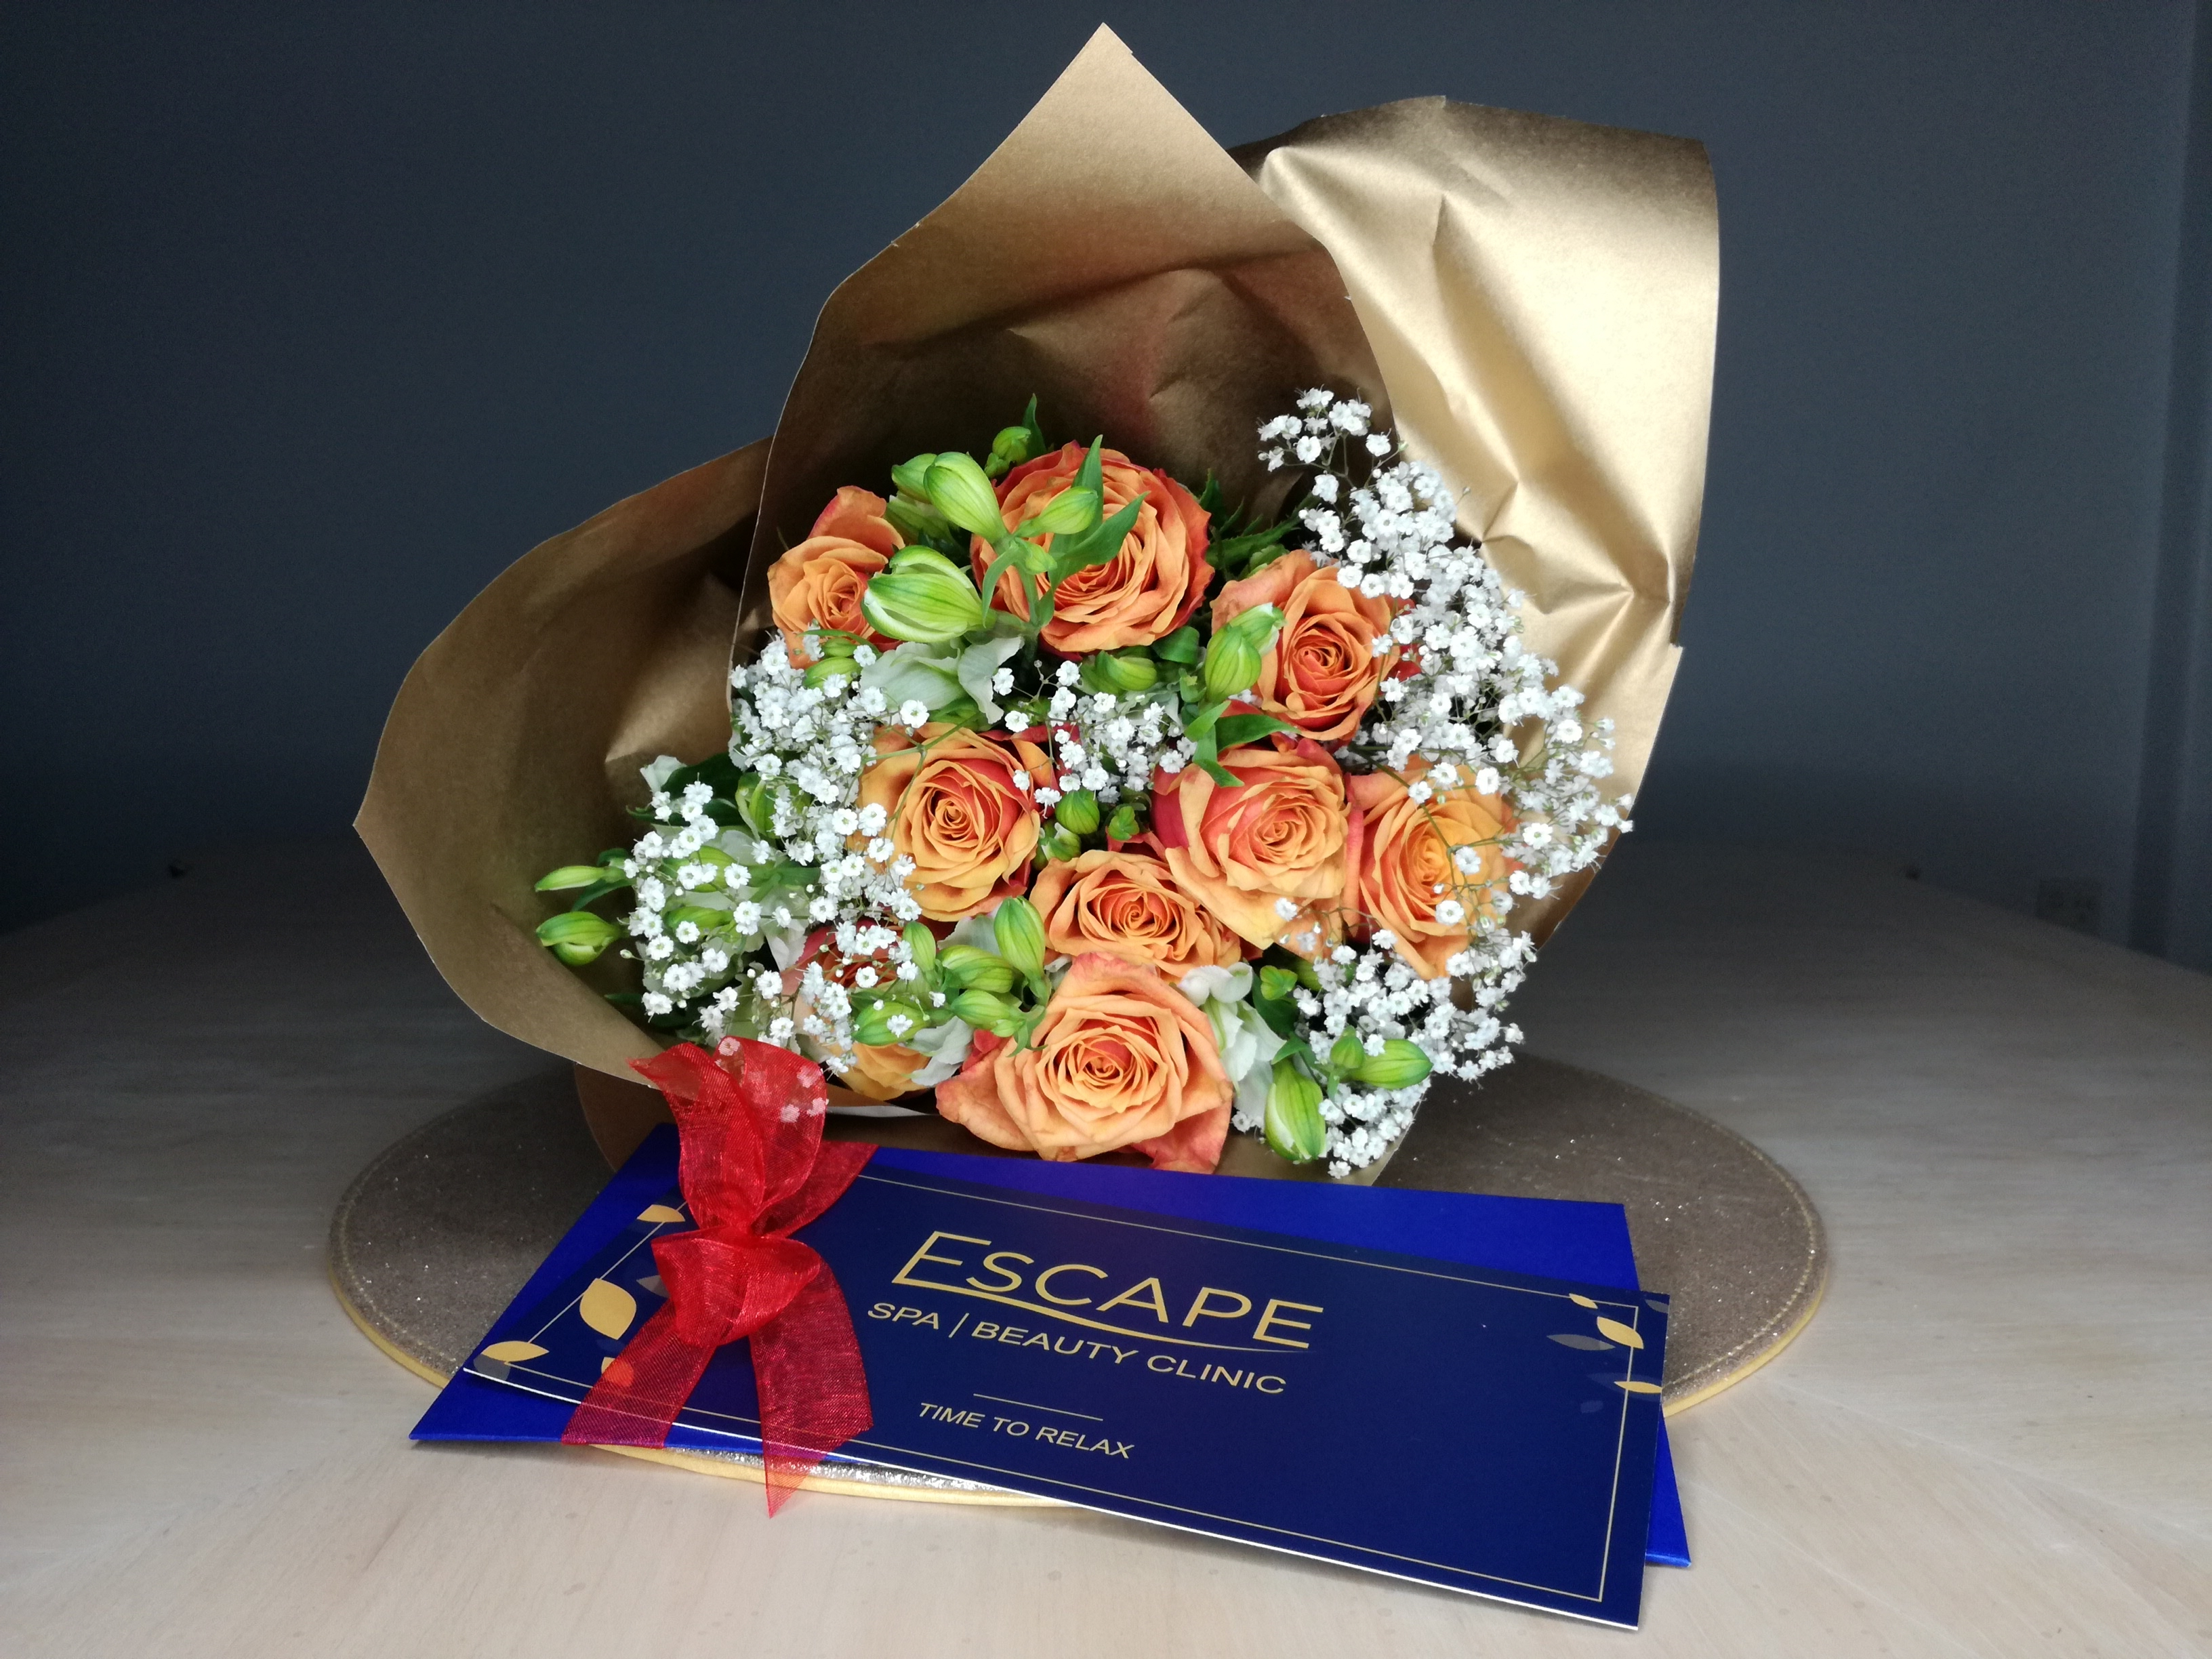 Your Escape Spa | Beauty Clinic, we have beautiful Gift Vouchers for all our treatments.